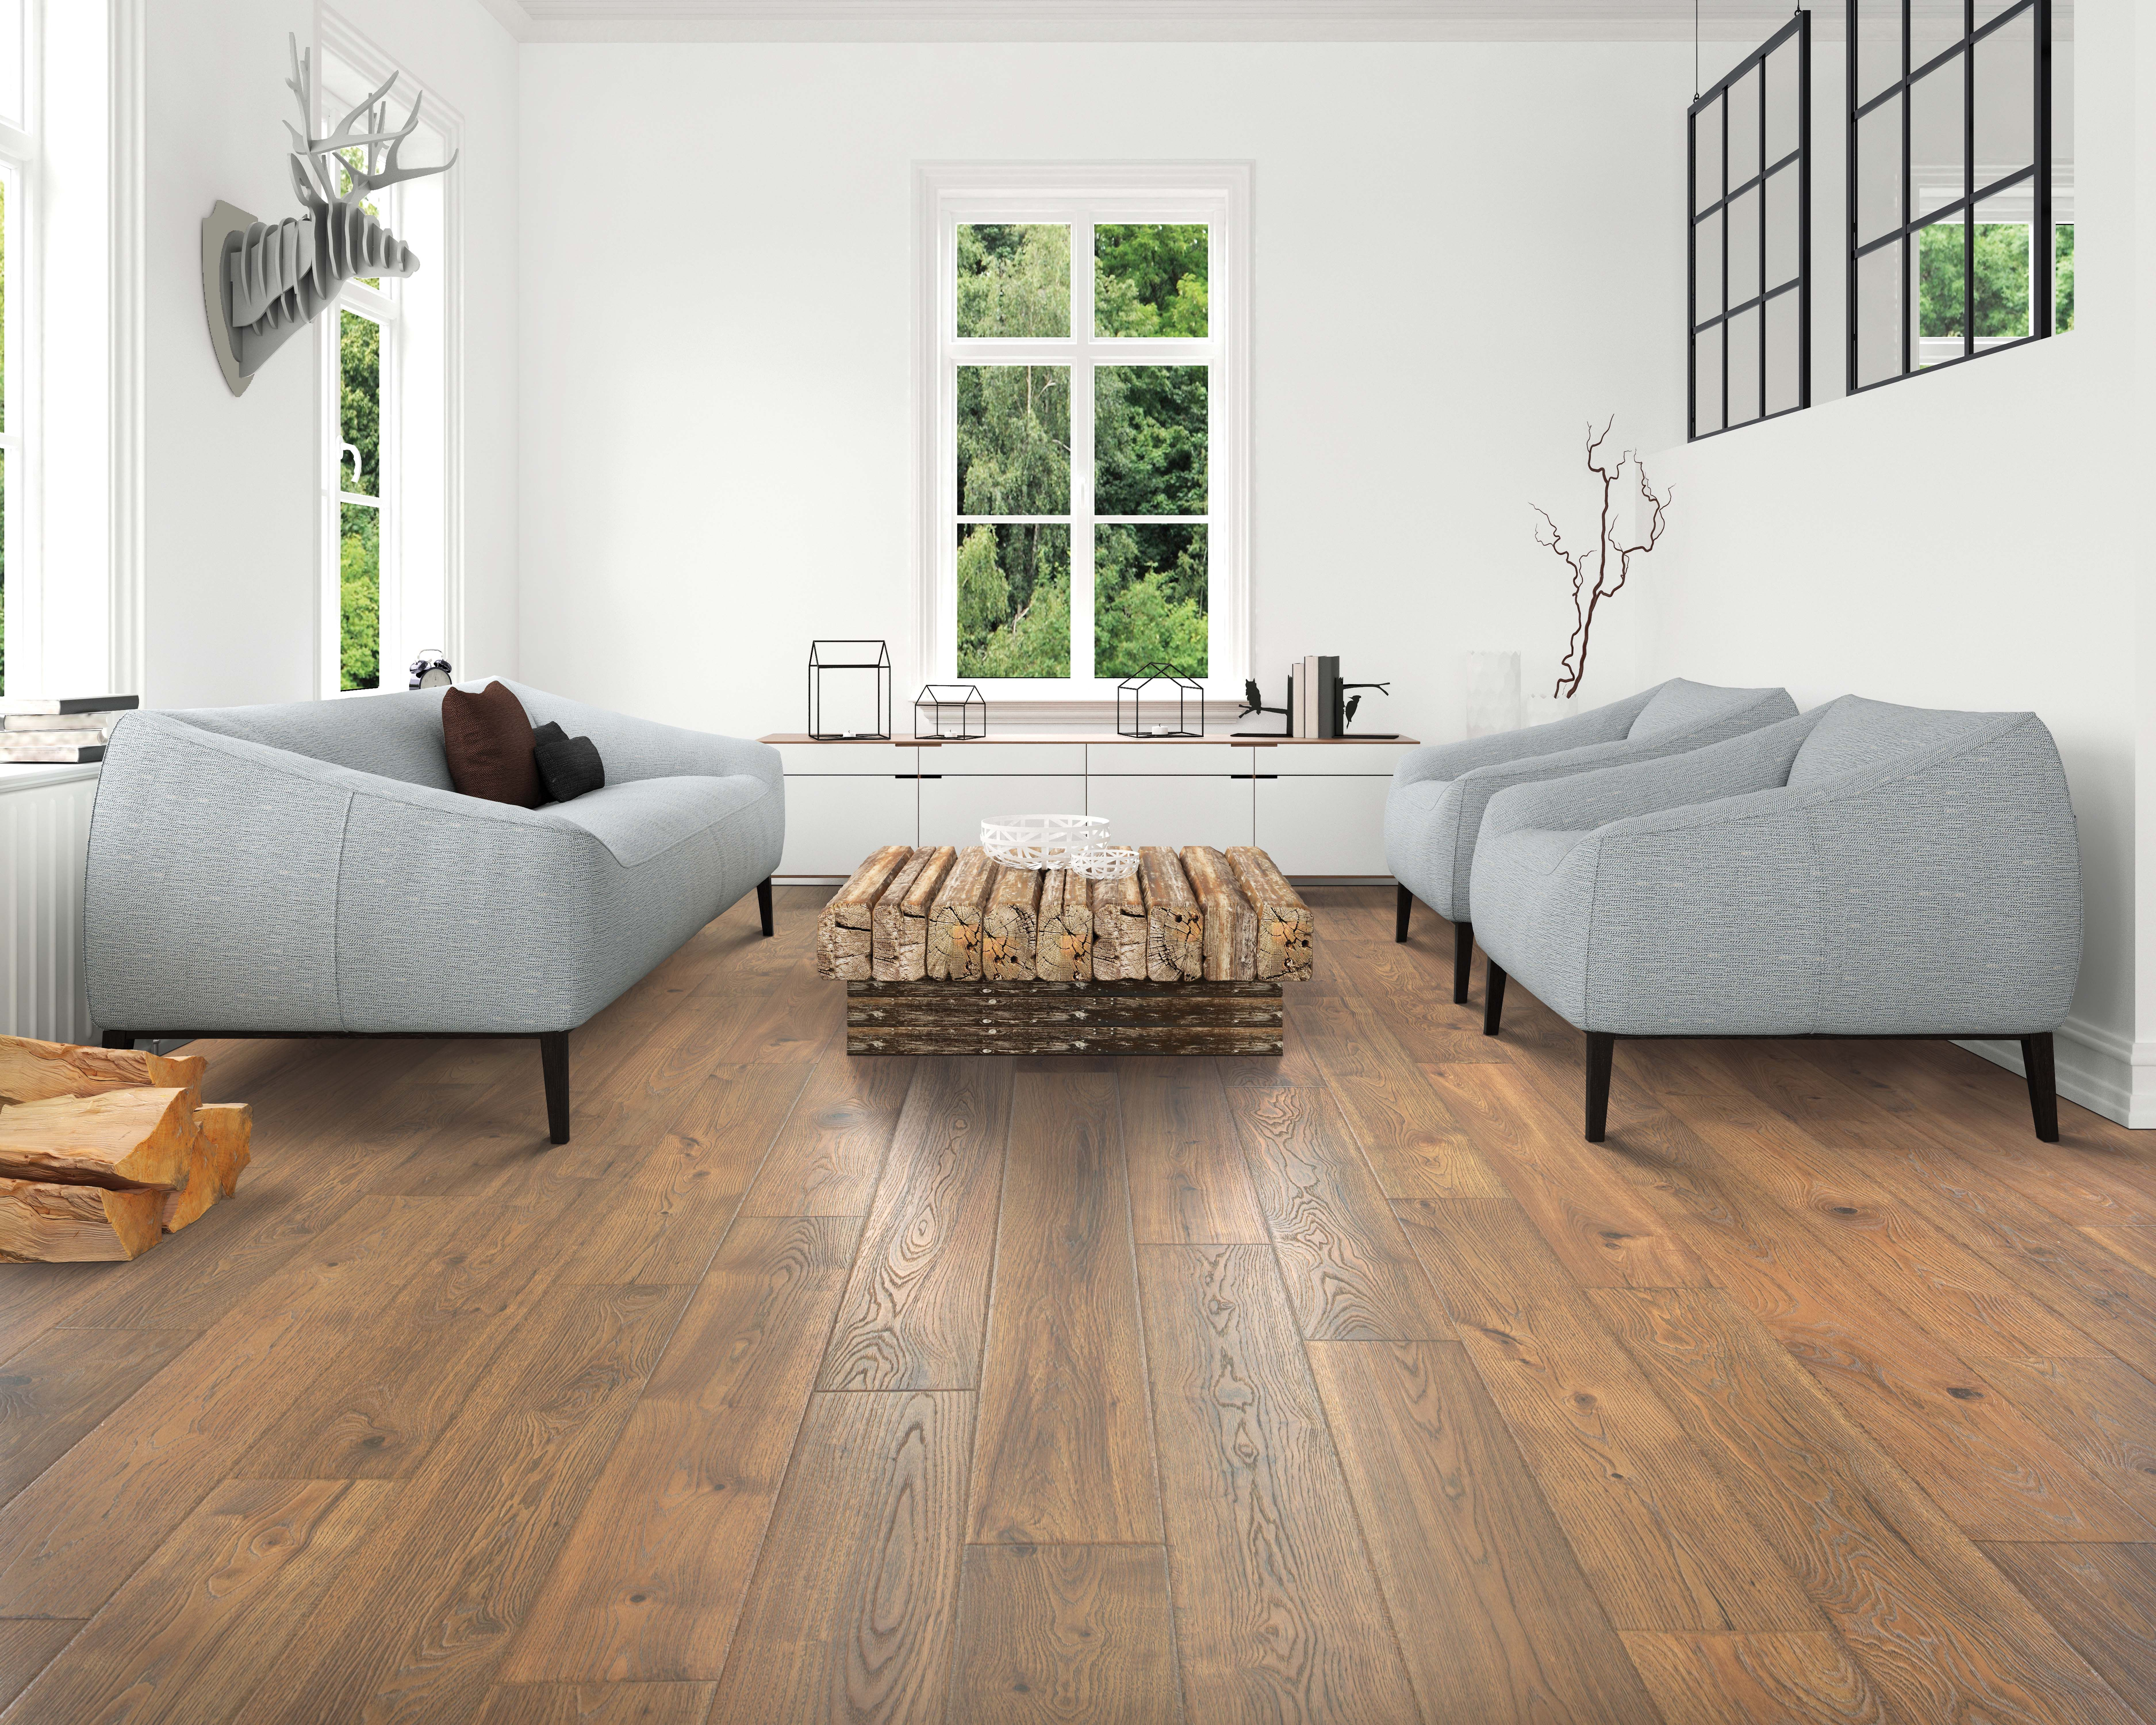 24 best pergo timbercraft images on pinterest floating floor try the natural look of pergo timbercraft valley grove oak if youre looking for a classic antiqued oak look this is your floor dailygadgetfo Choice Image